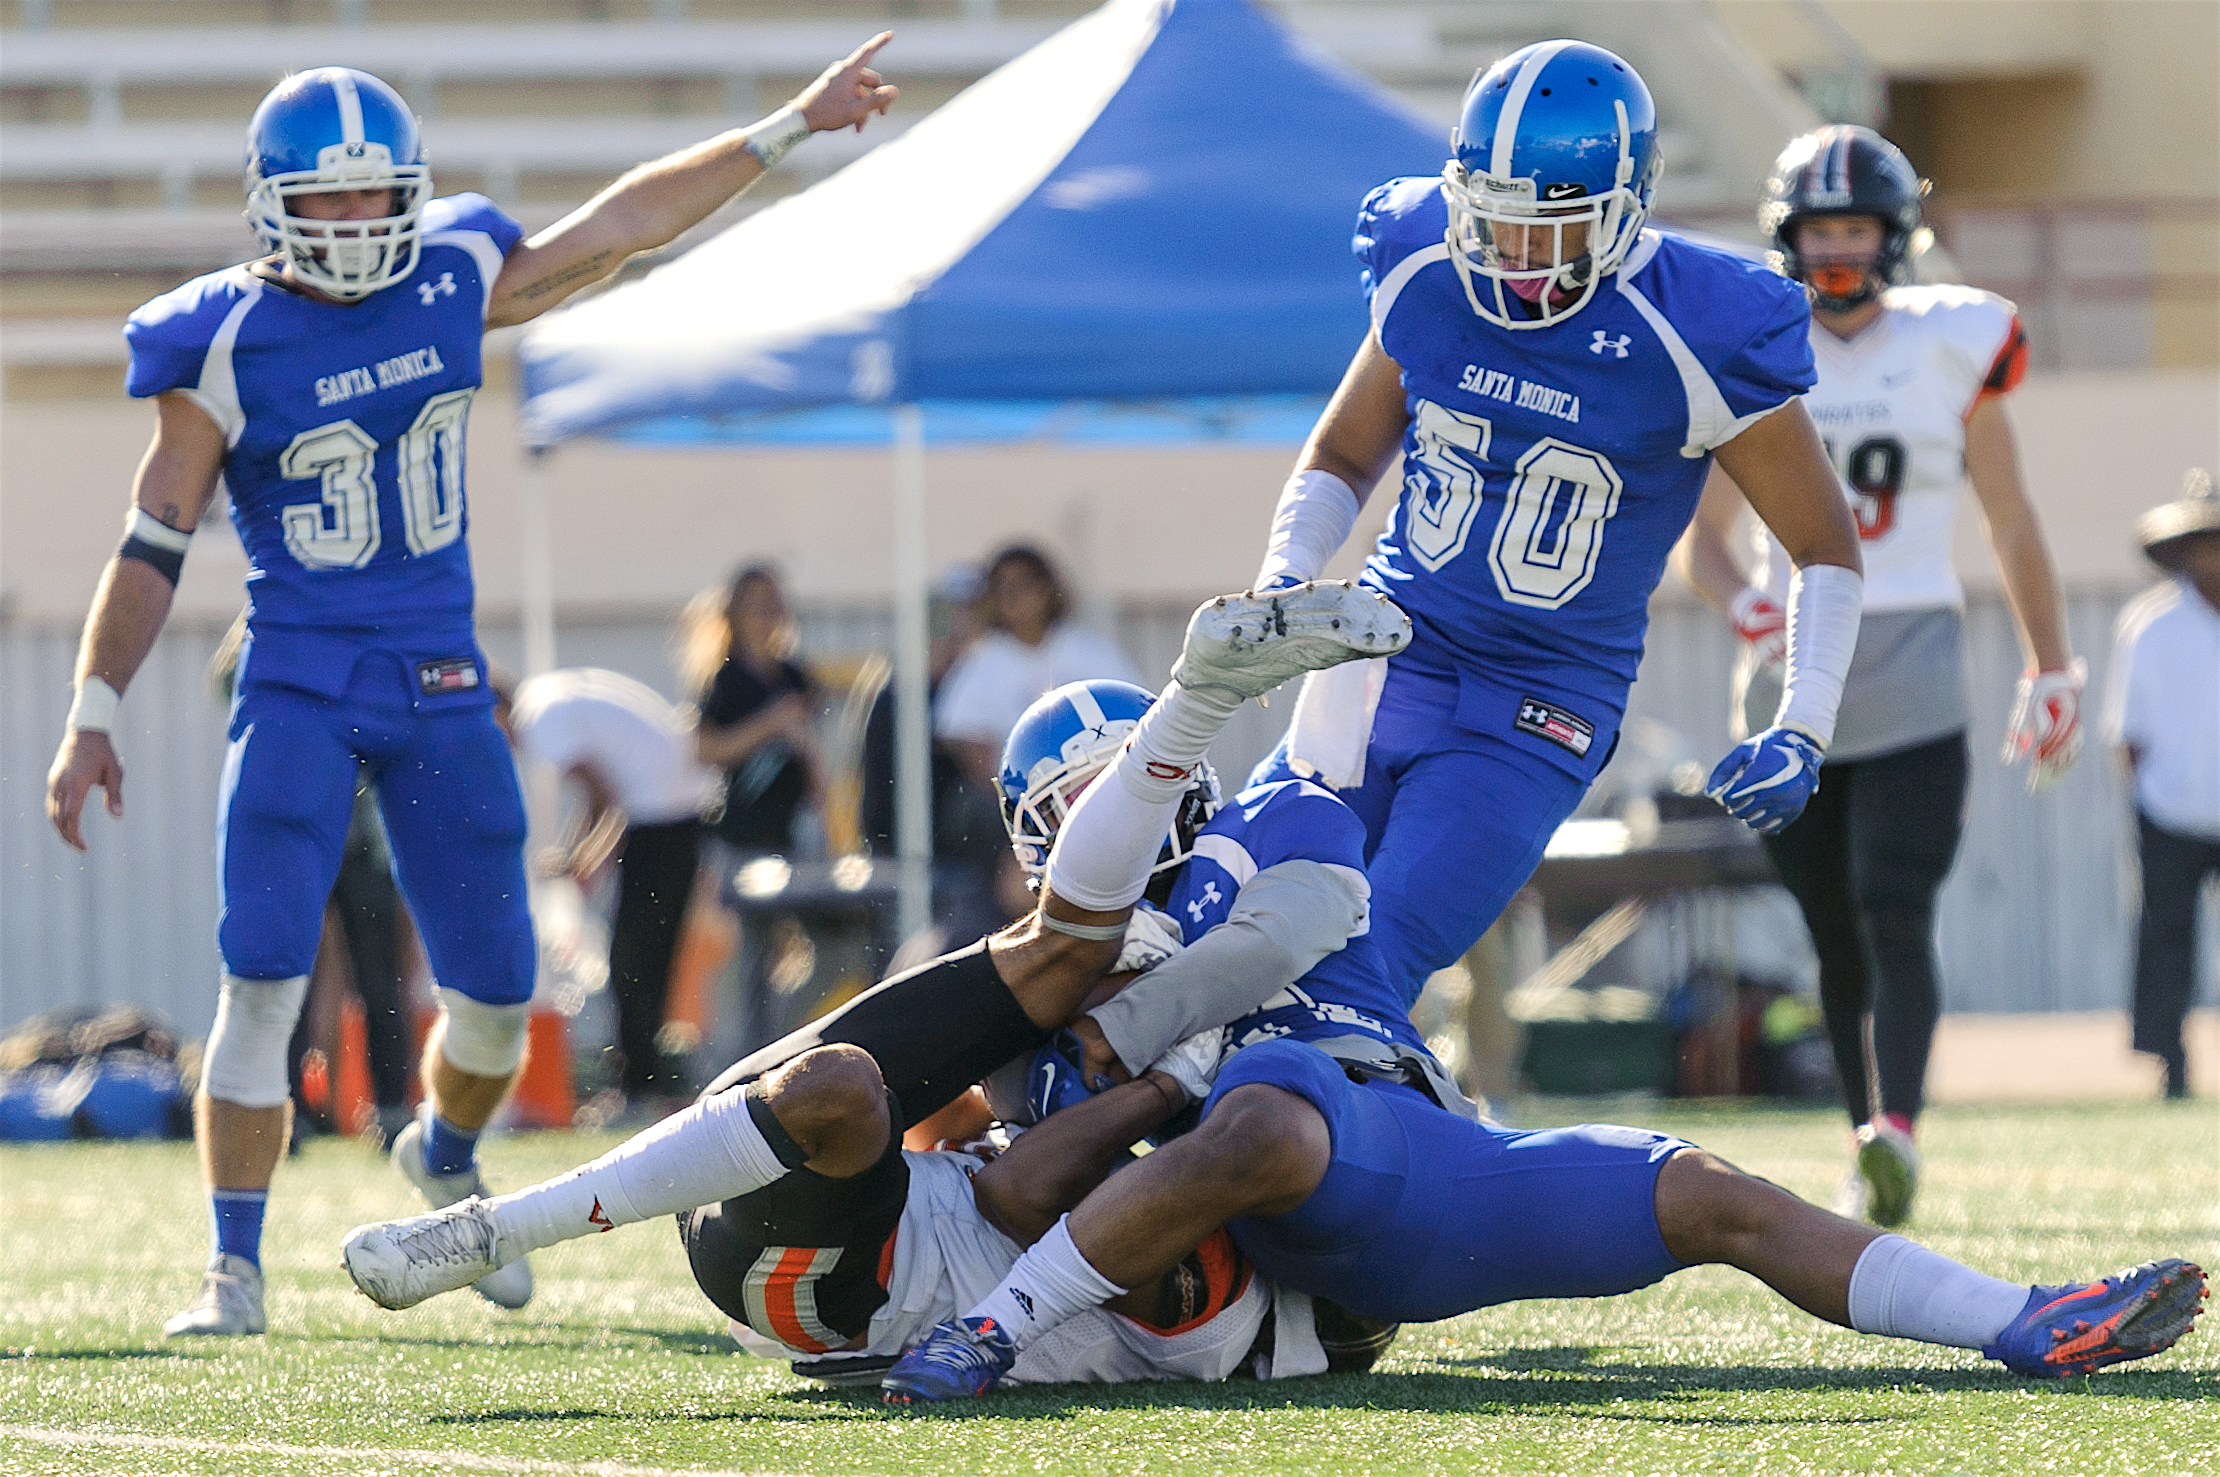 The Corsair defense intercepts a pass at the endzone, preventing a touchdown for Ventura College. The Santa Monica College Corsairs lose to the Ventura College Pirates 0-55. The game was held at the Corsair Stadium at the Santa Monica College Main Campus in Santa Monica, Calif.. October 21, 2017. (Photo by: Justin Han/Corsair Staff)